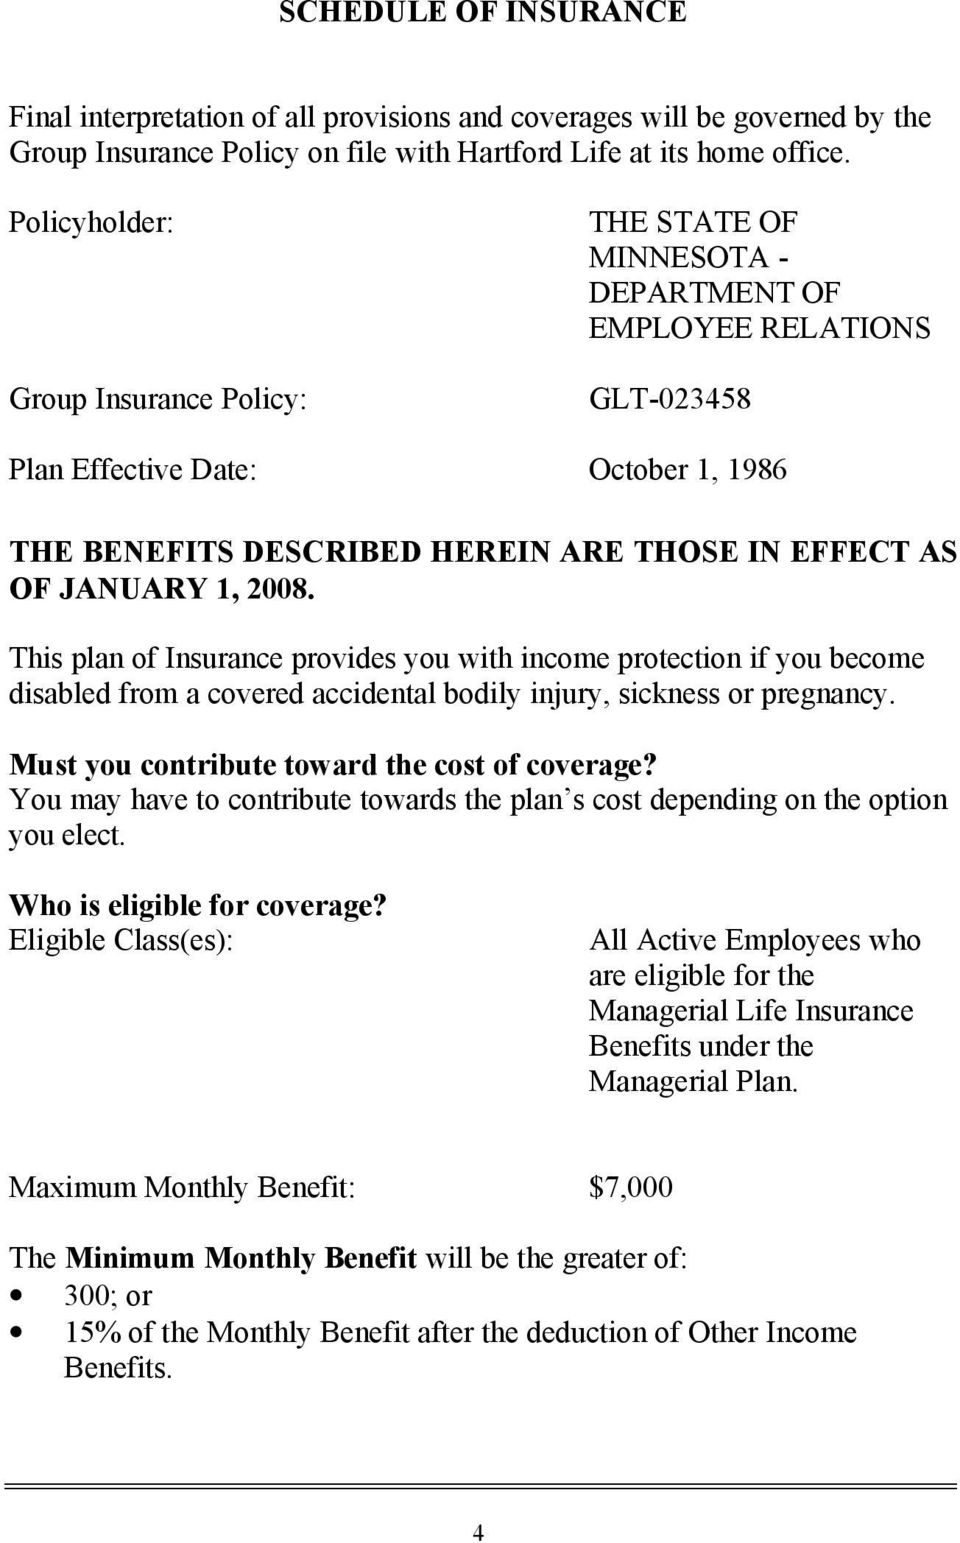 JANUARY 1, 2008. This plan of Insurance provides you with income protection if you become disabled from a covered accidental bodily injury, sickness or pregnancy.